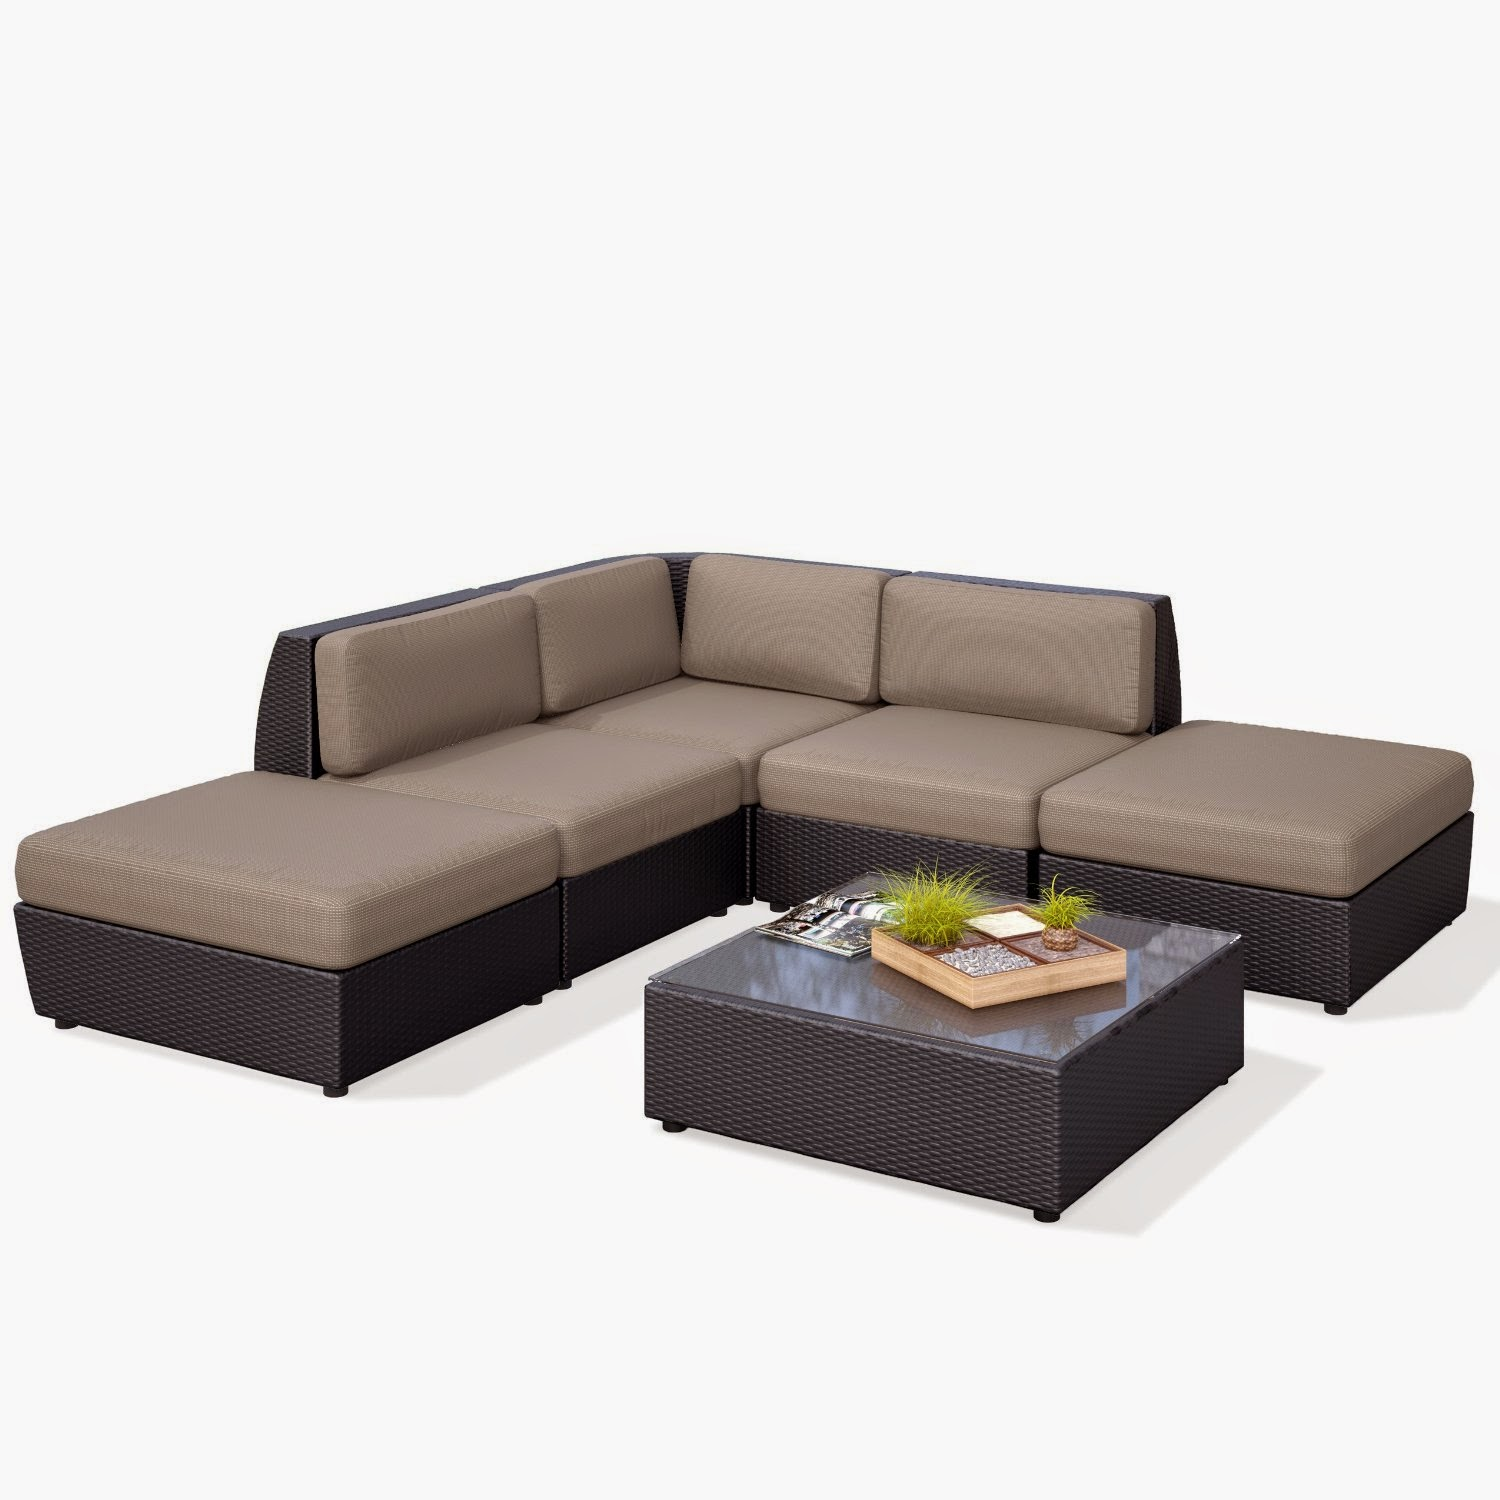 Curved sofa website reviews curved sectional sofa with chaise Loveseat chaise sectional